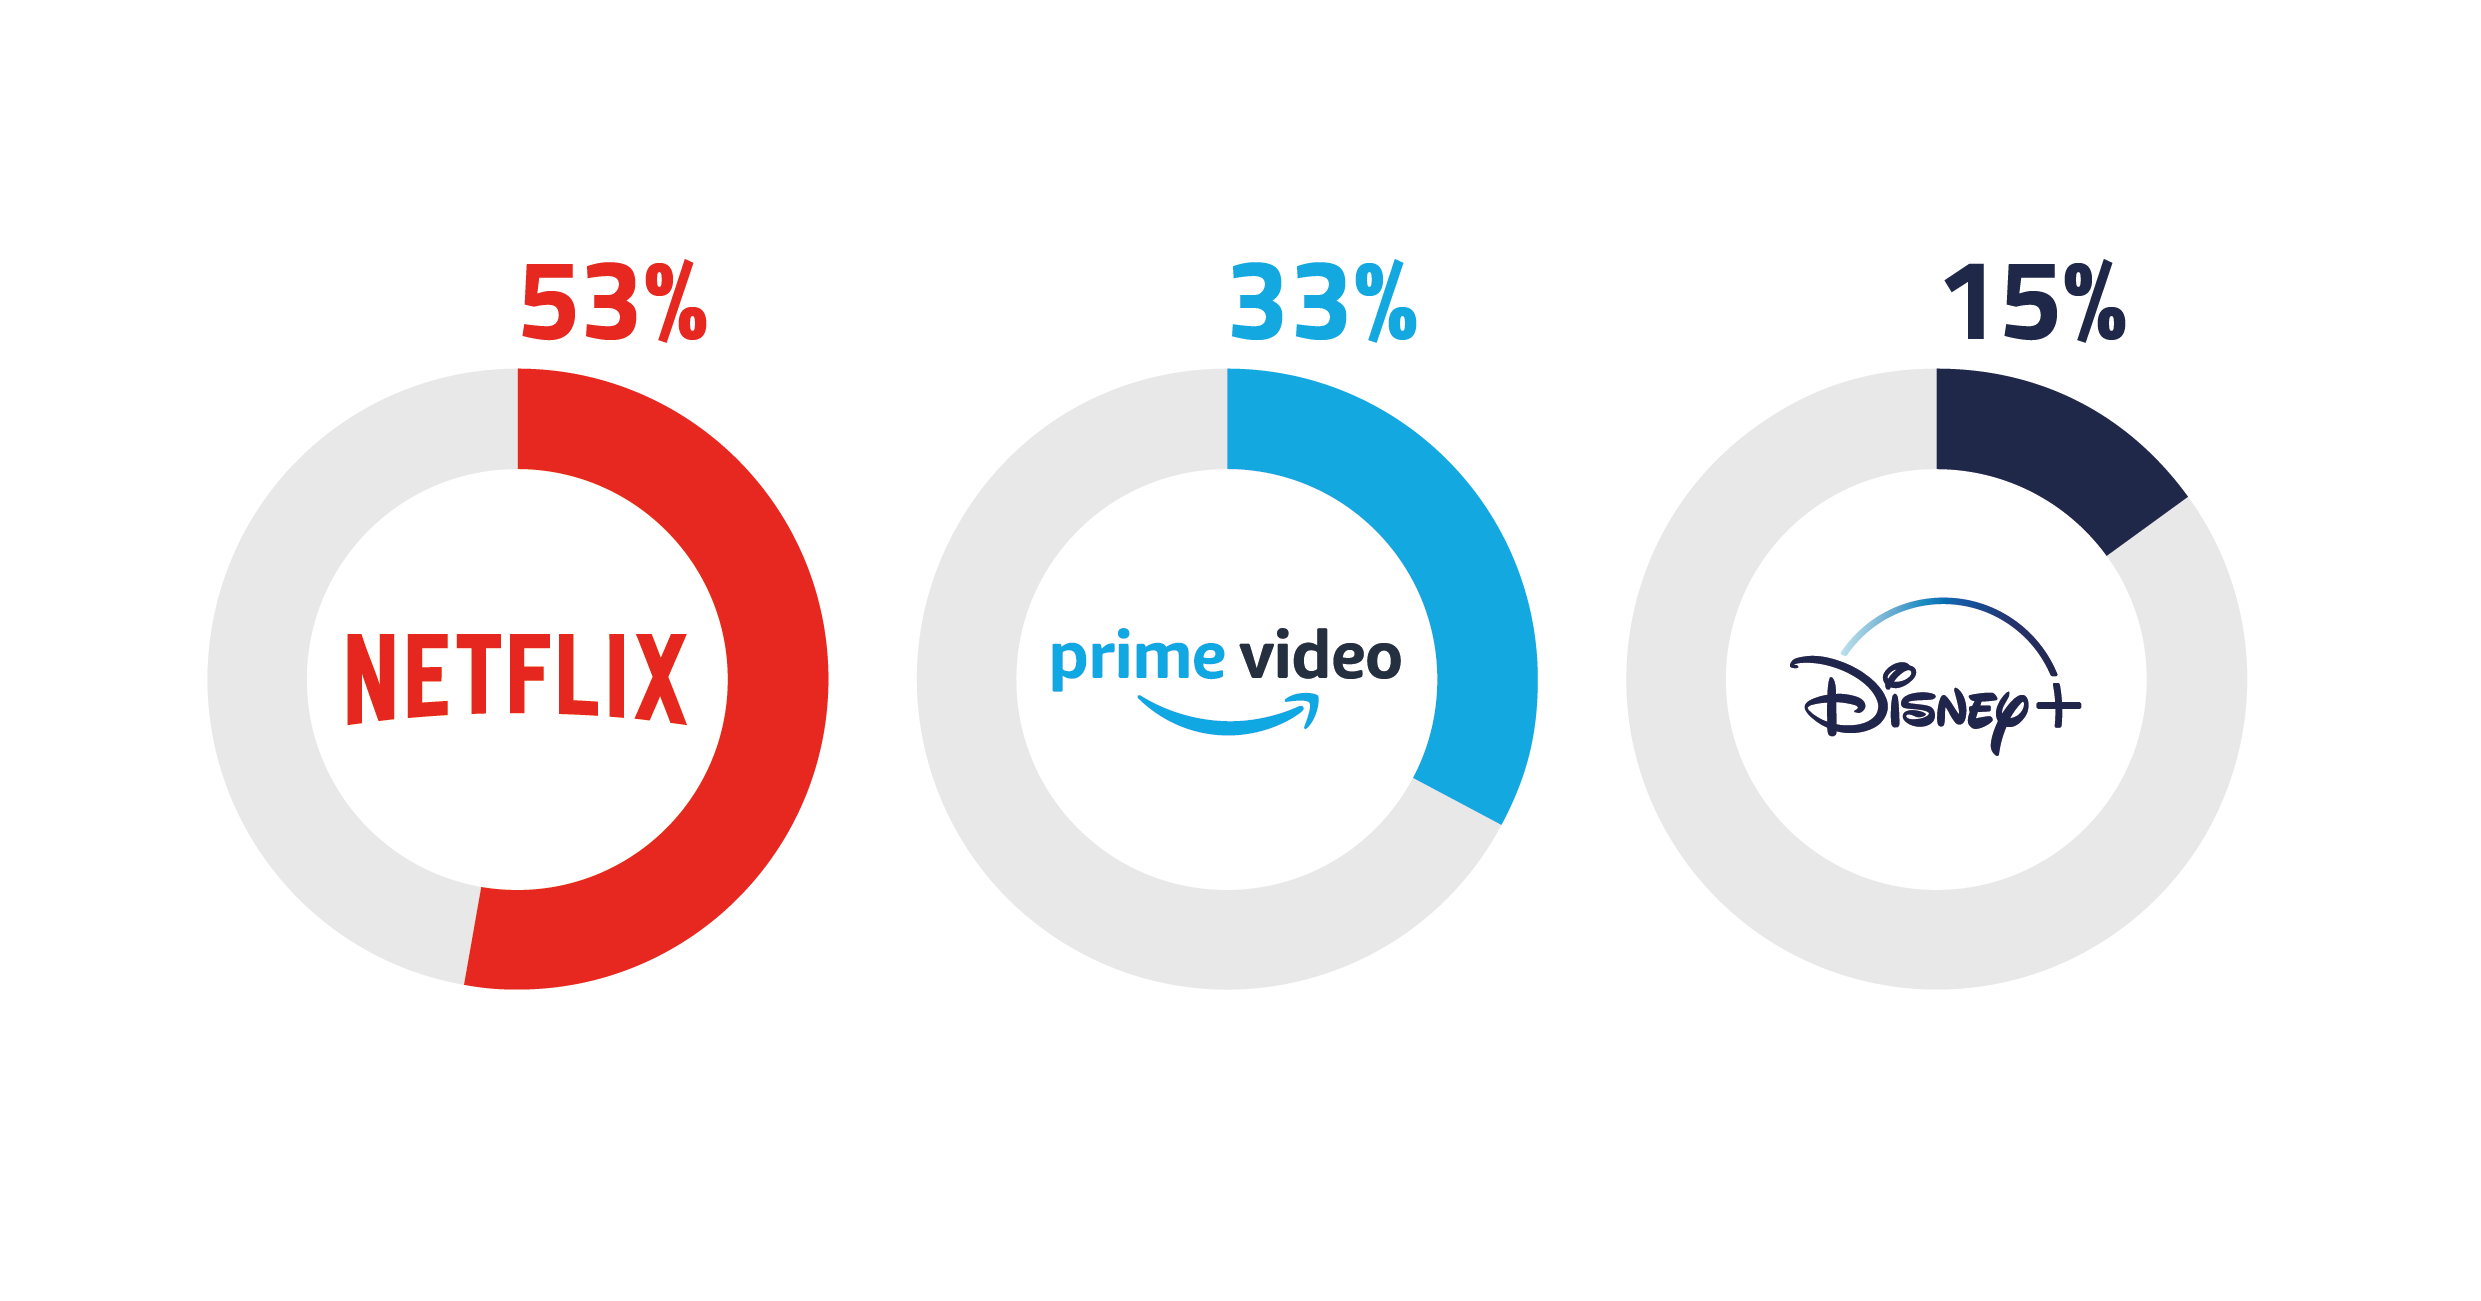 Infographic showing take-up of SVoD services in Wales.Netflix is still the largest; more than half (53%) of households have a subscription, followed by Amazon Prime Video (33%) and Disney+ (15%).